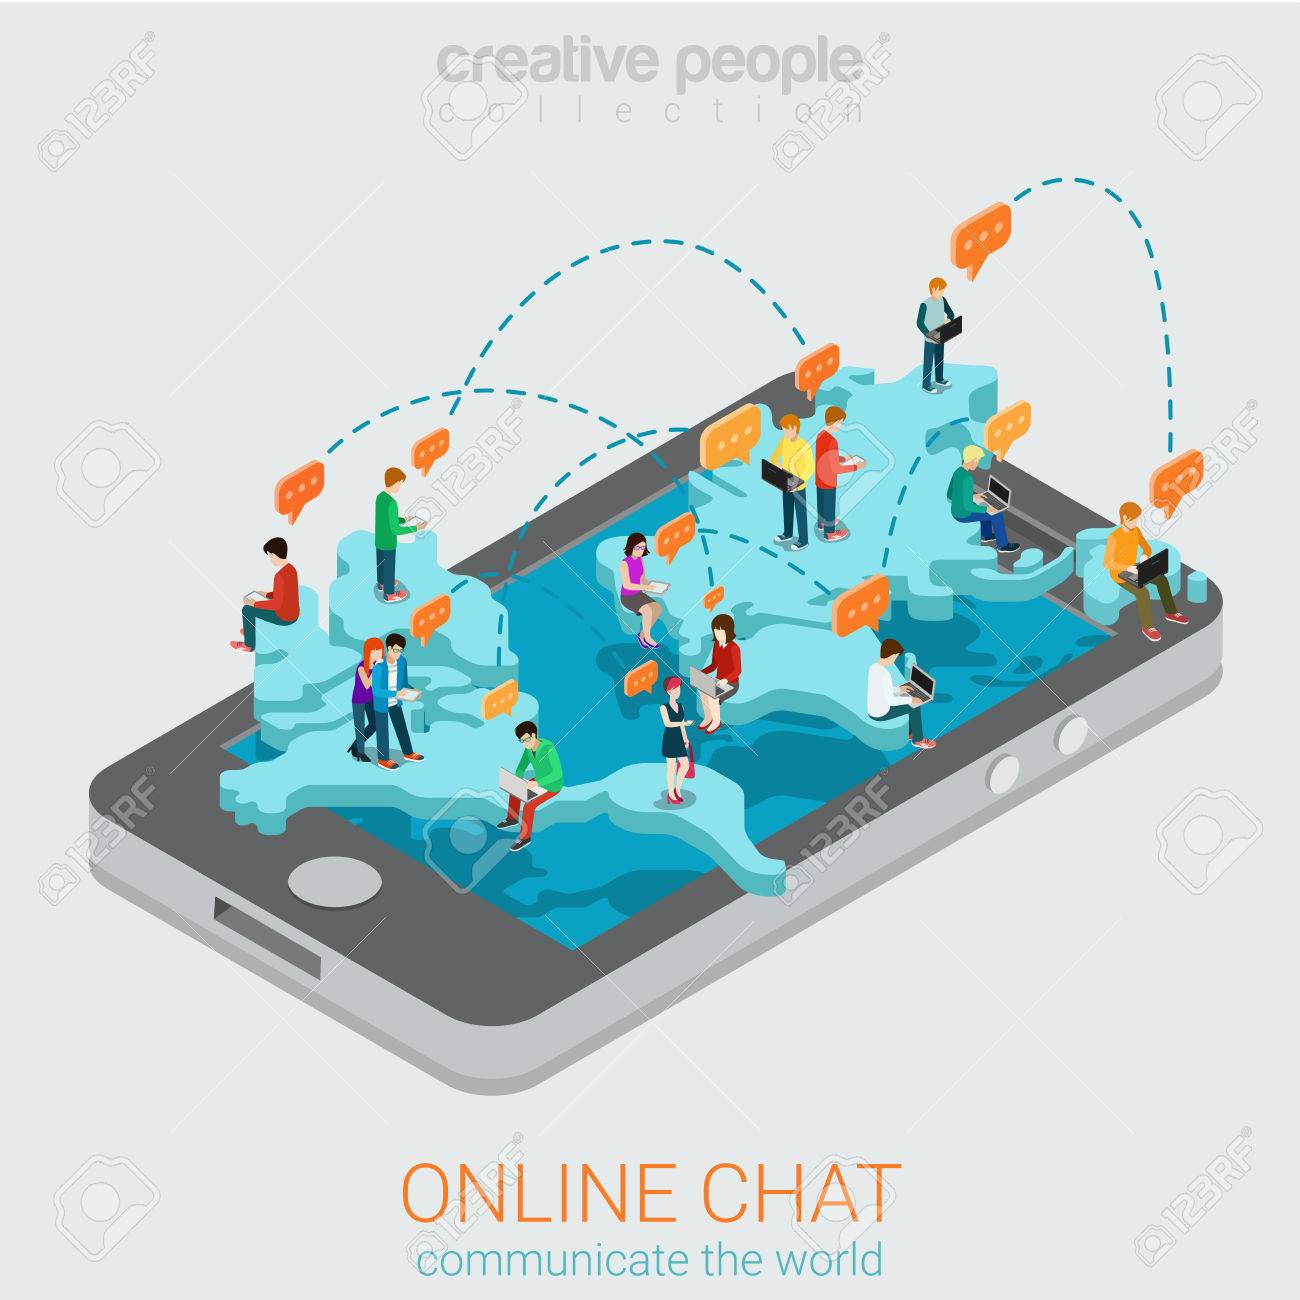 Online chat flat 3d isometric concept  Big smartphone world map